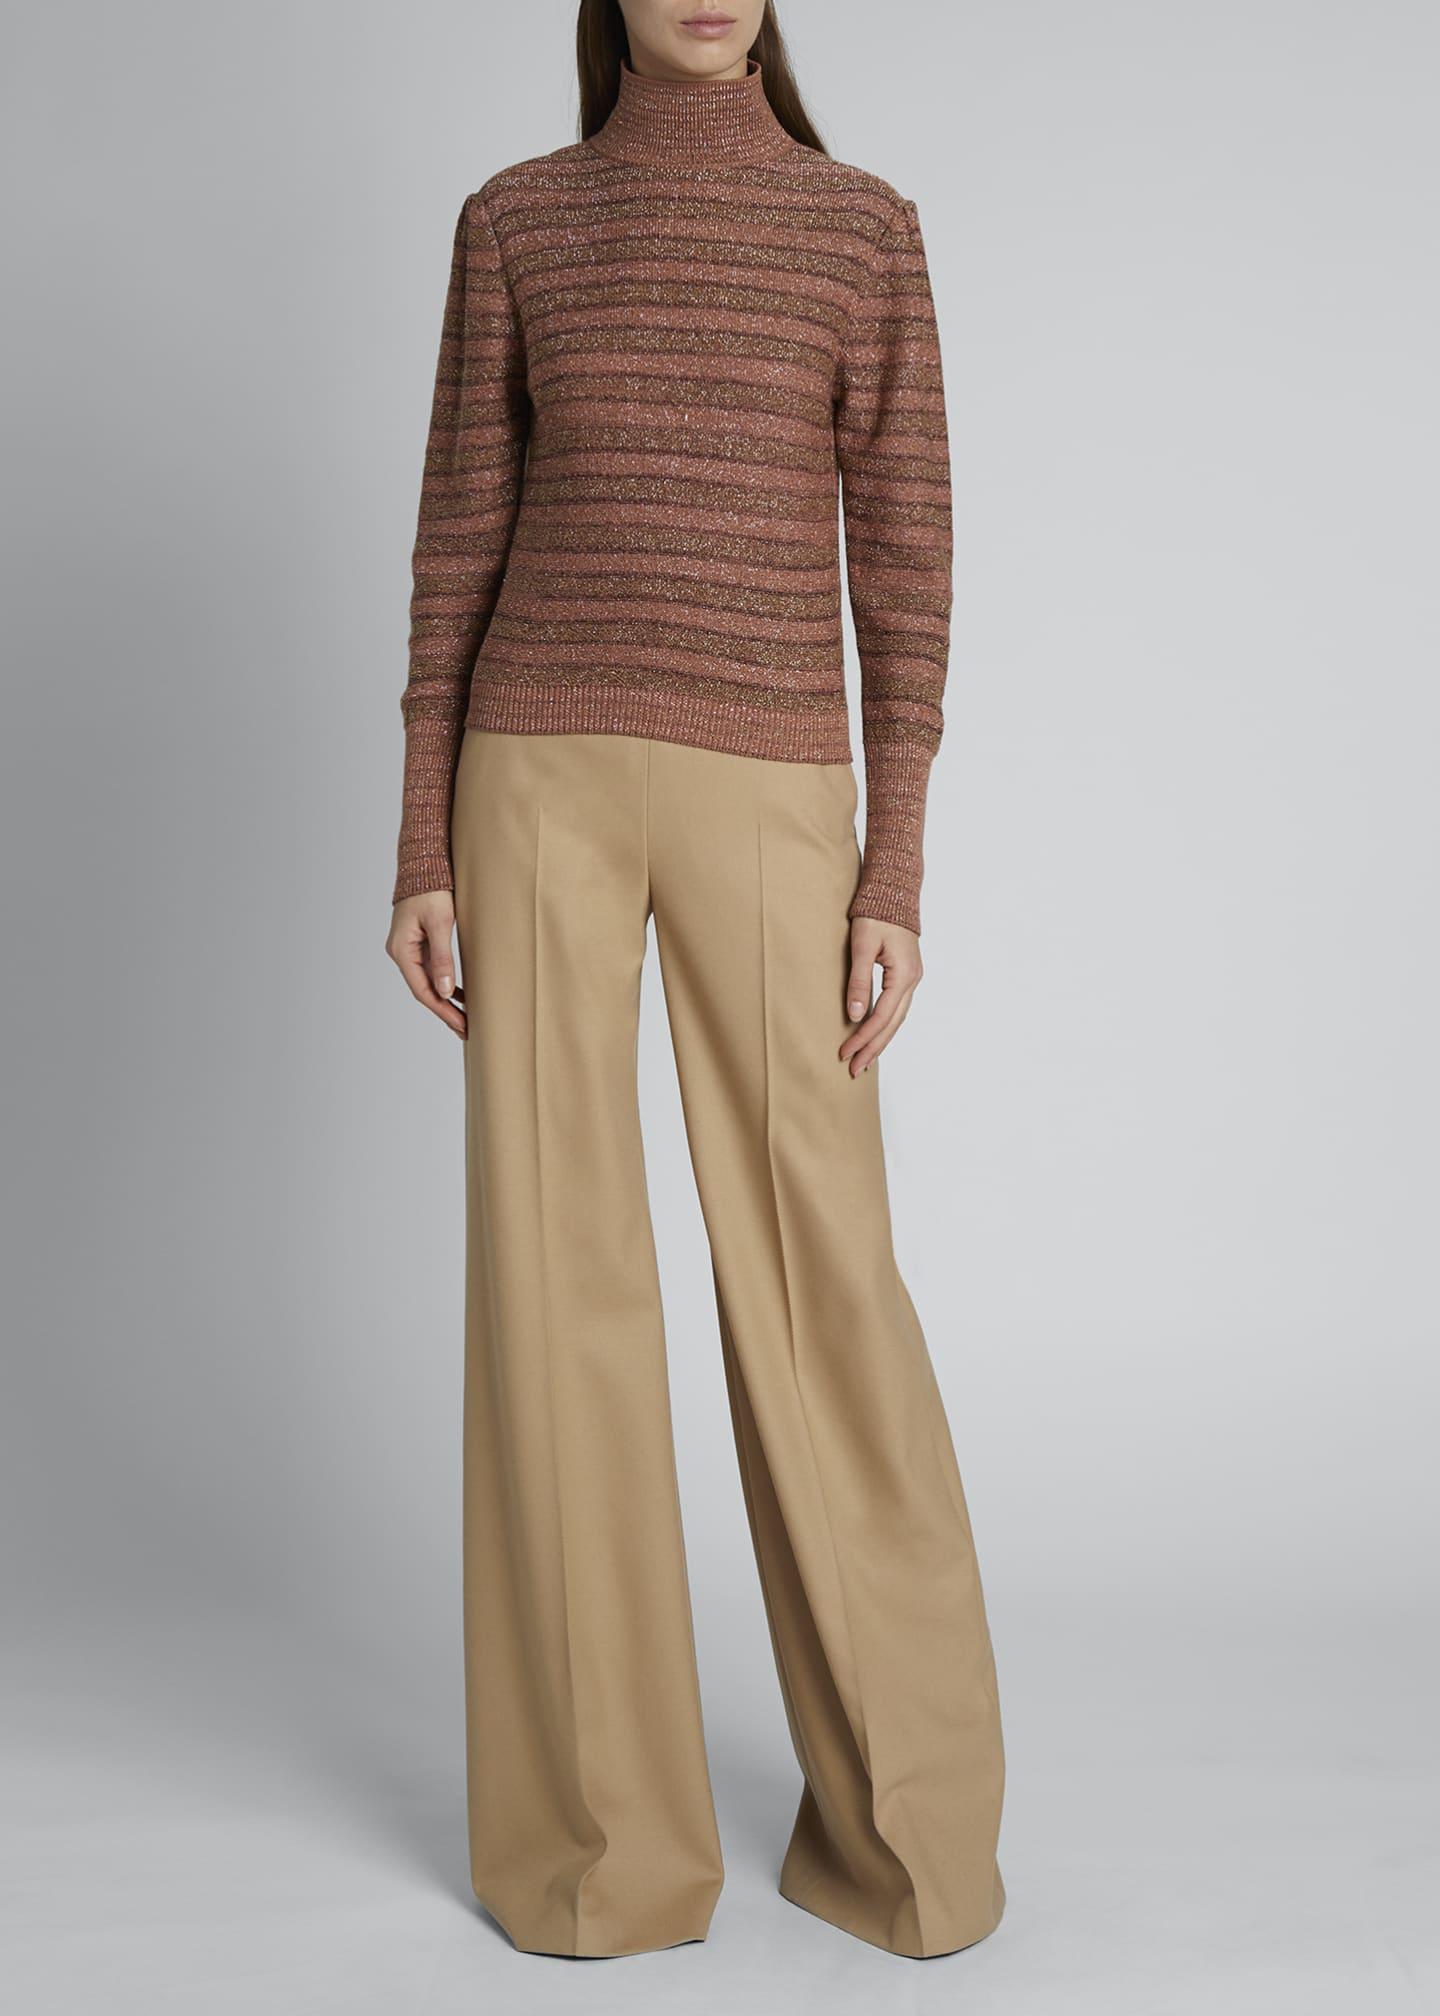 Image 1 of 3: Metallic Striped Knit Turtleneck Sweater